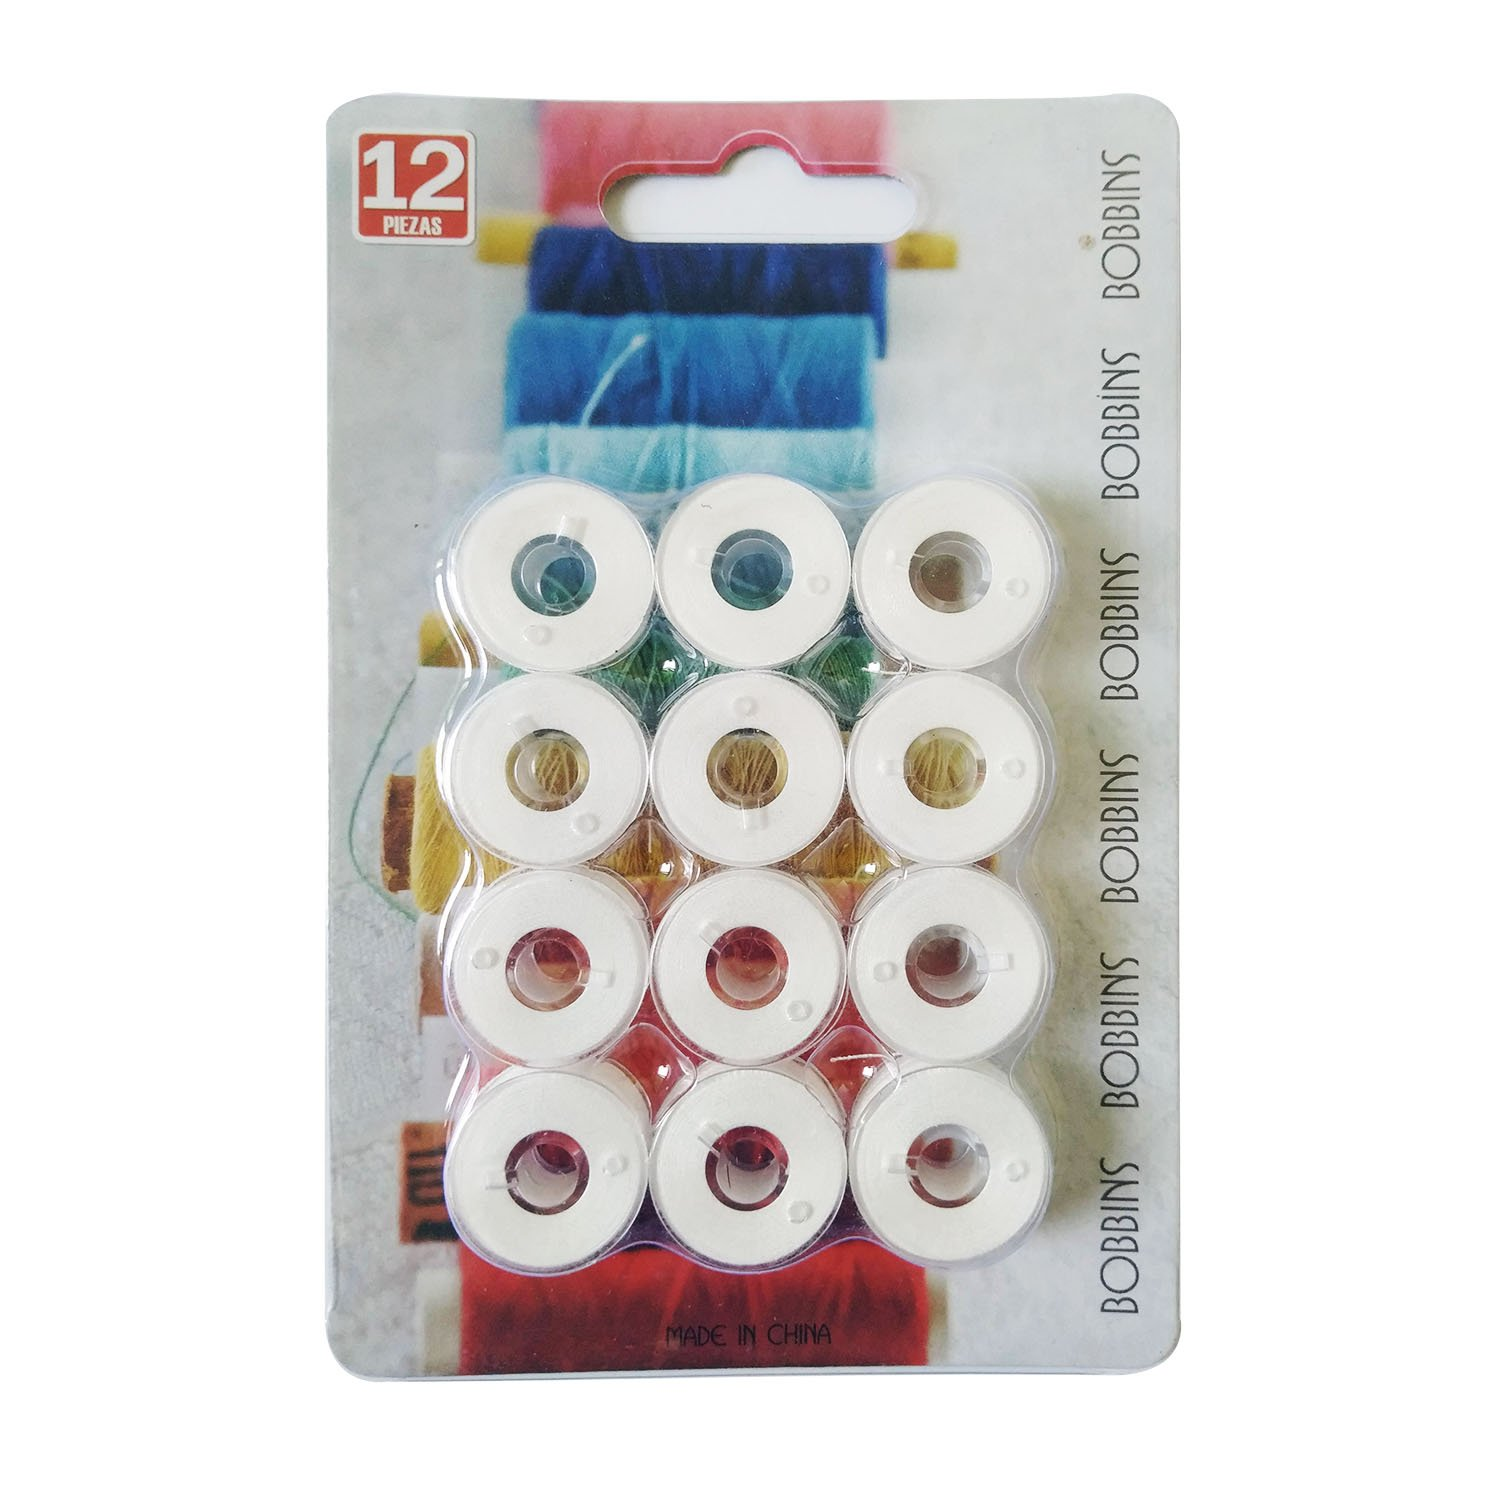 72 Pcs Sewing Machine Bobbins with Bobbin Box for Brother/Babylock/ Janome/Elna/ Singer, Transparent Plastic Sewing Machine Bobbin Set JZKJ